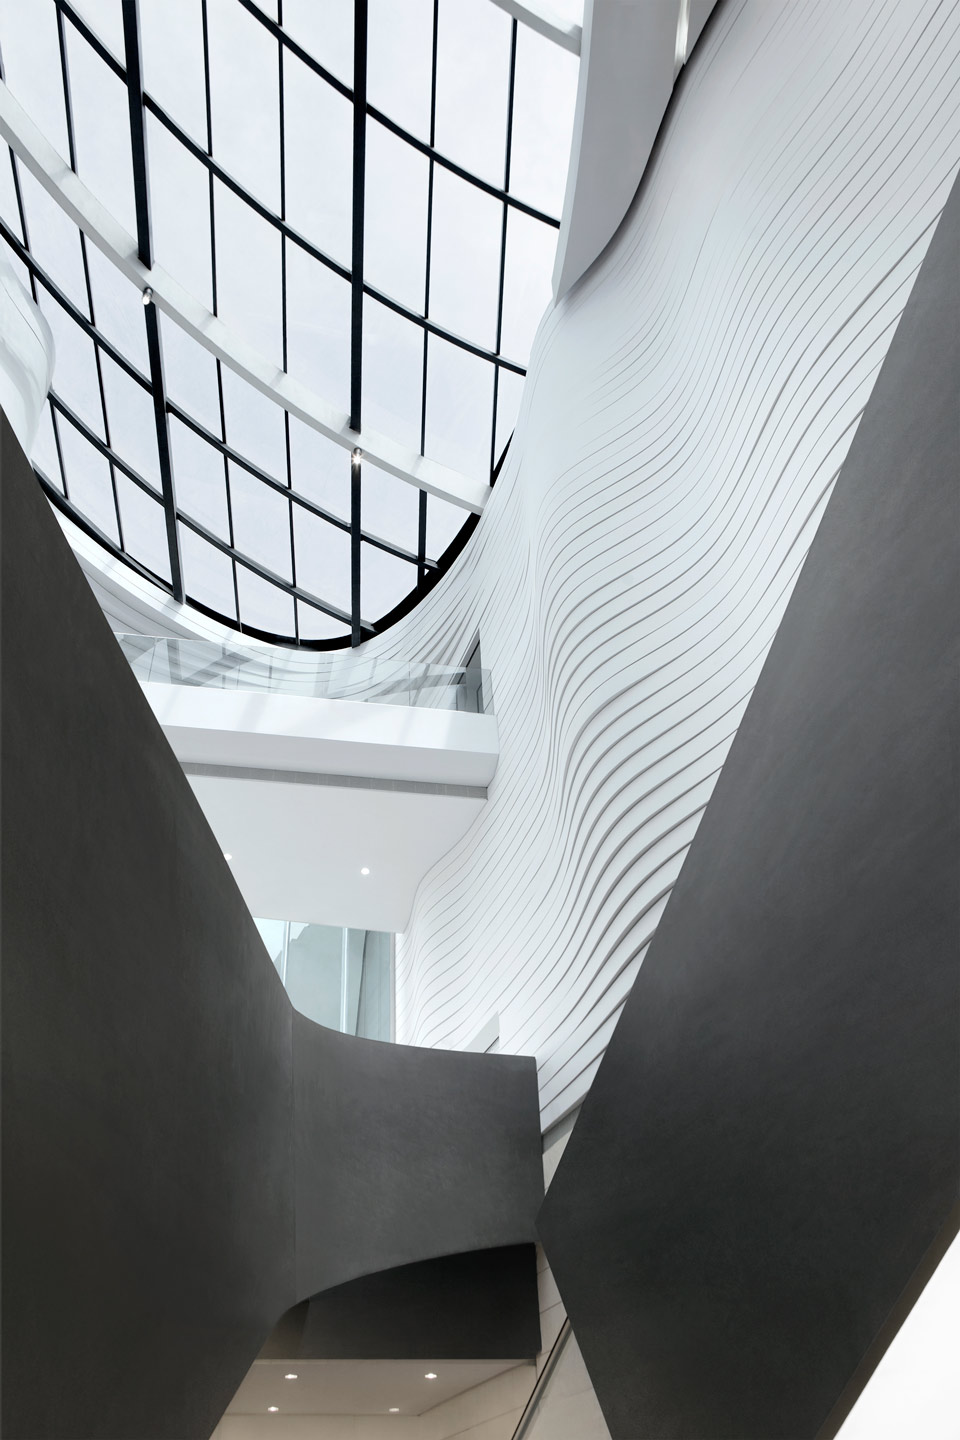 waa Museum of Contemporary Art Yinchuan interior close up 未觉建筑 银川当代美术馆 室内 特写